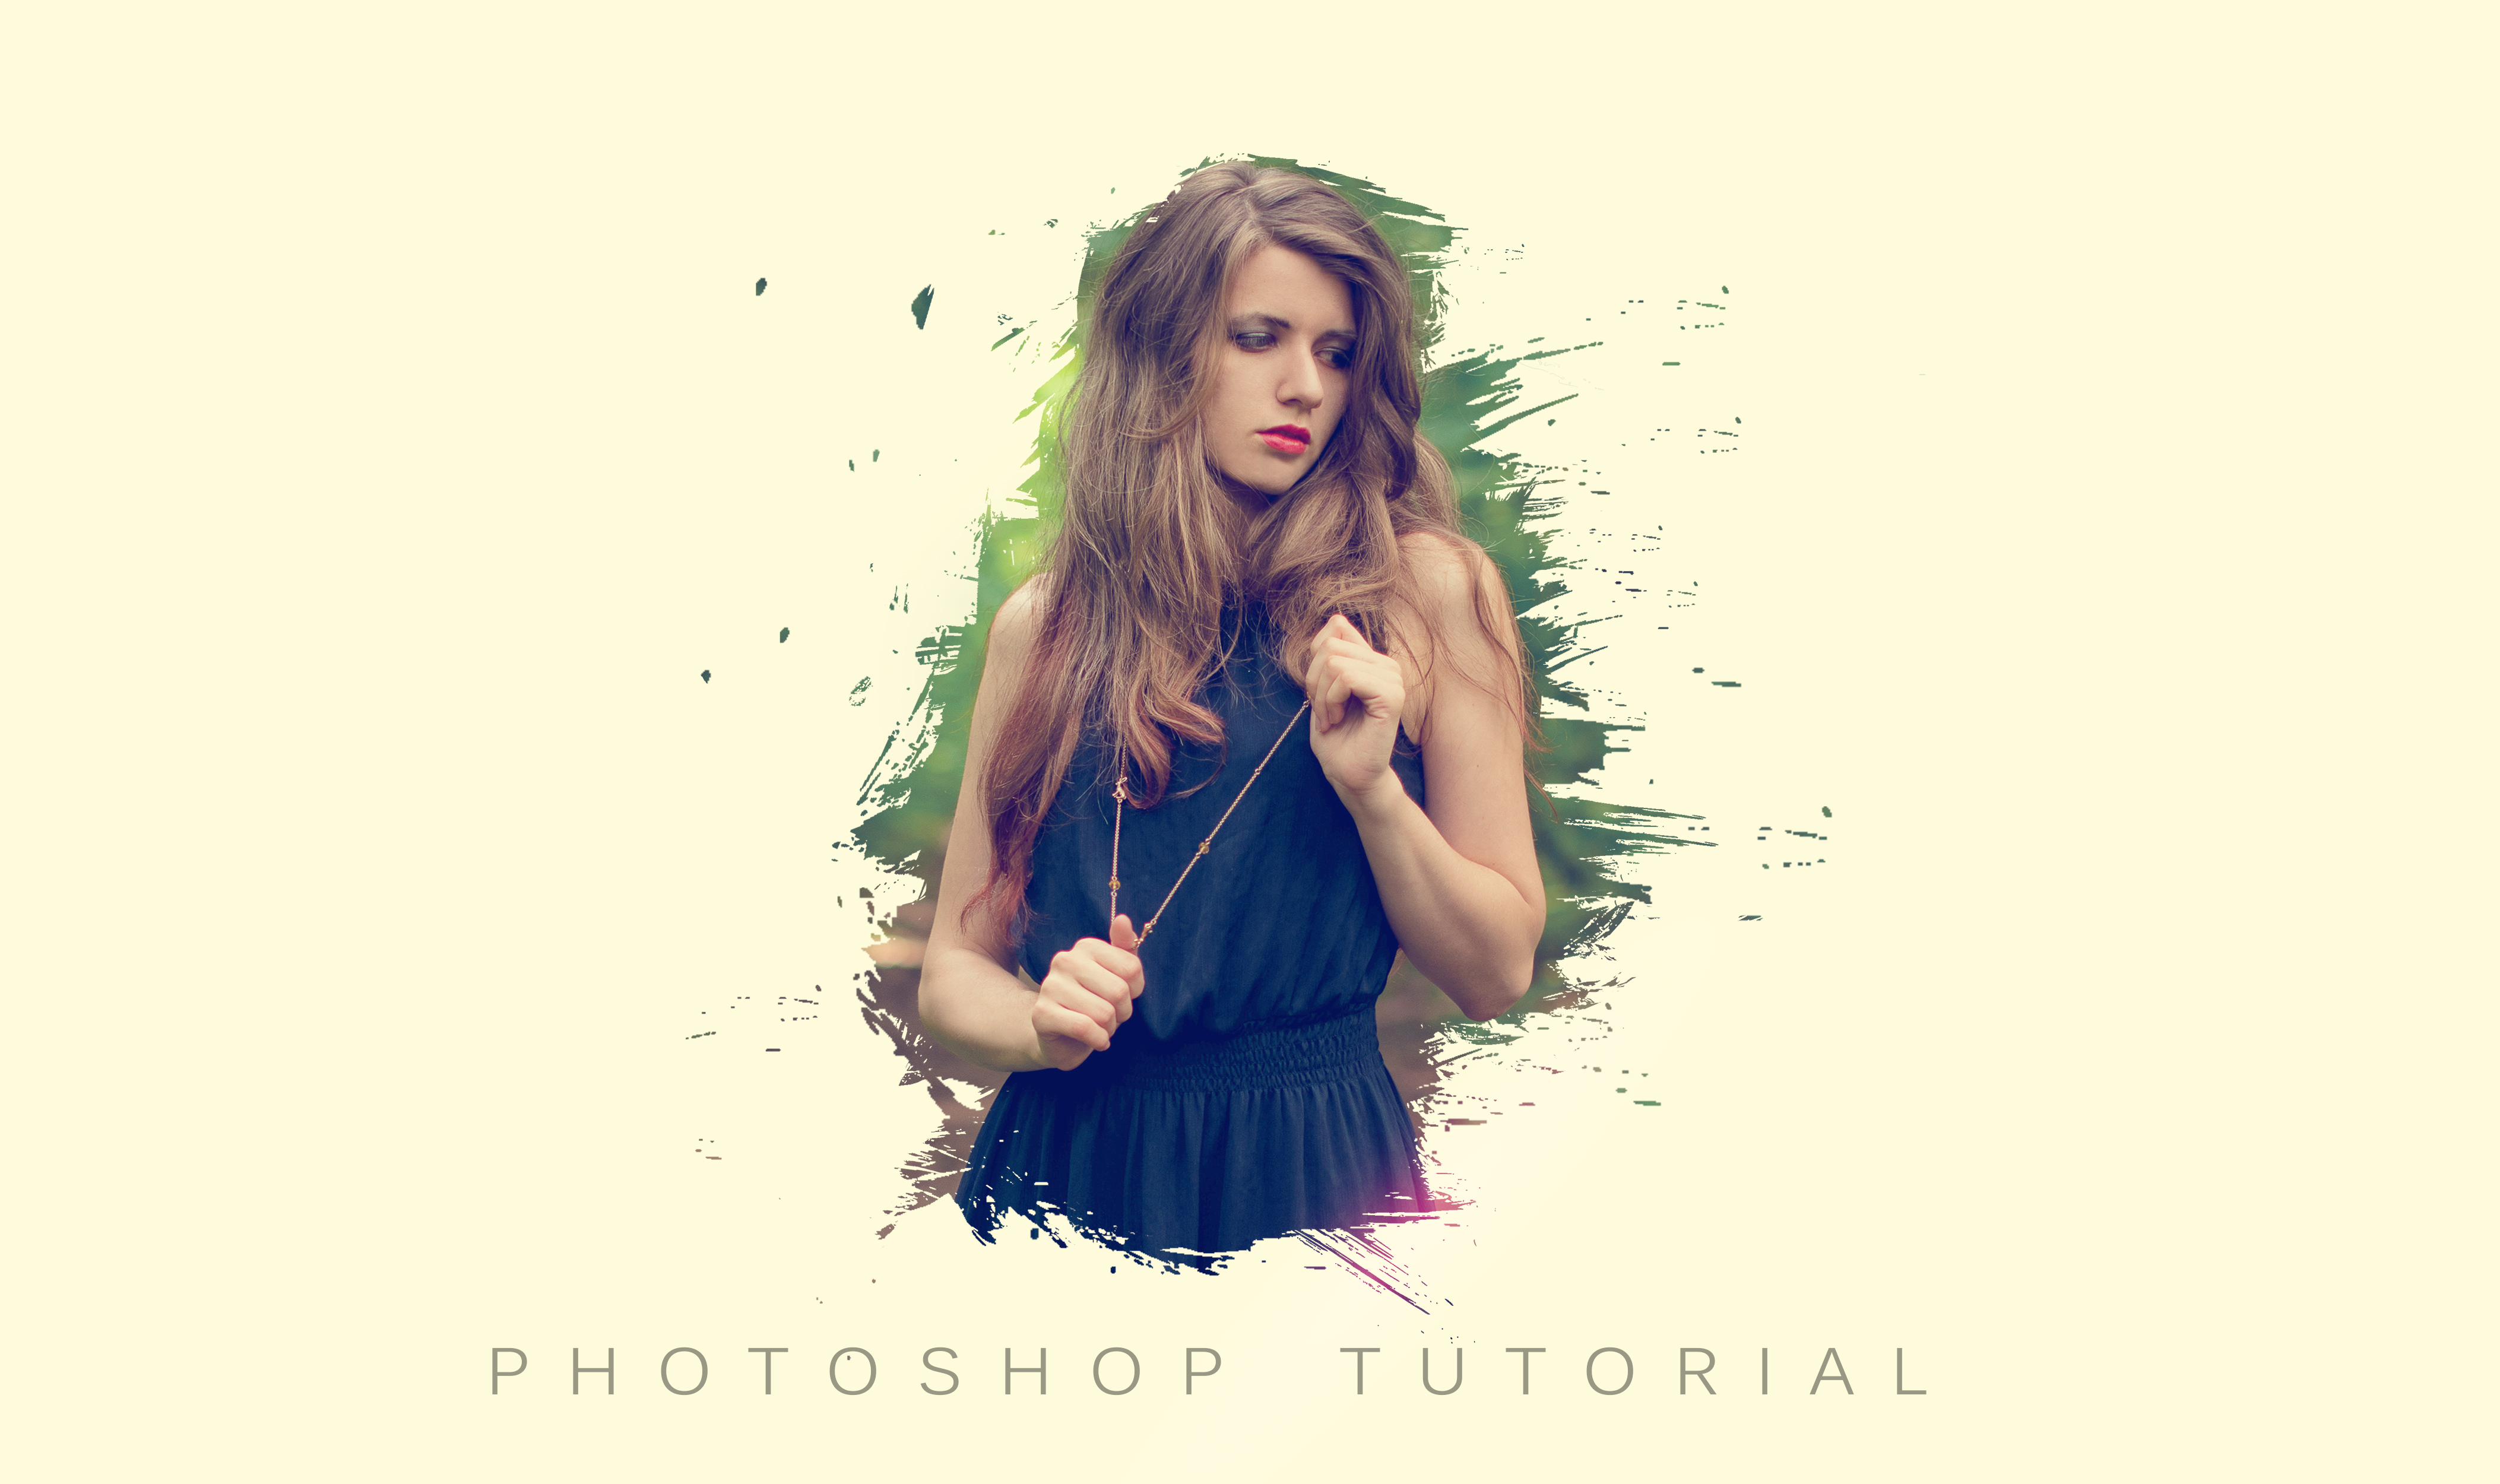 Cool abstract effect photoshop cs6 tutorial tutorials junction baditri Image collections